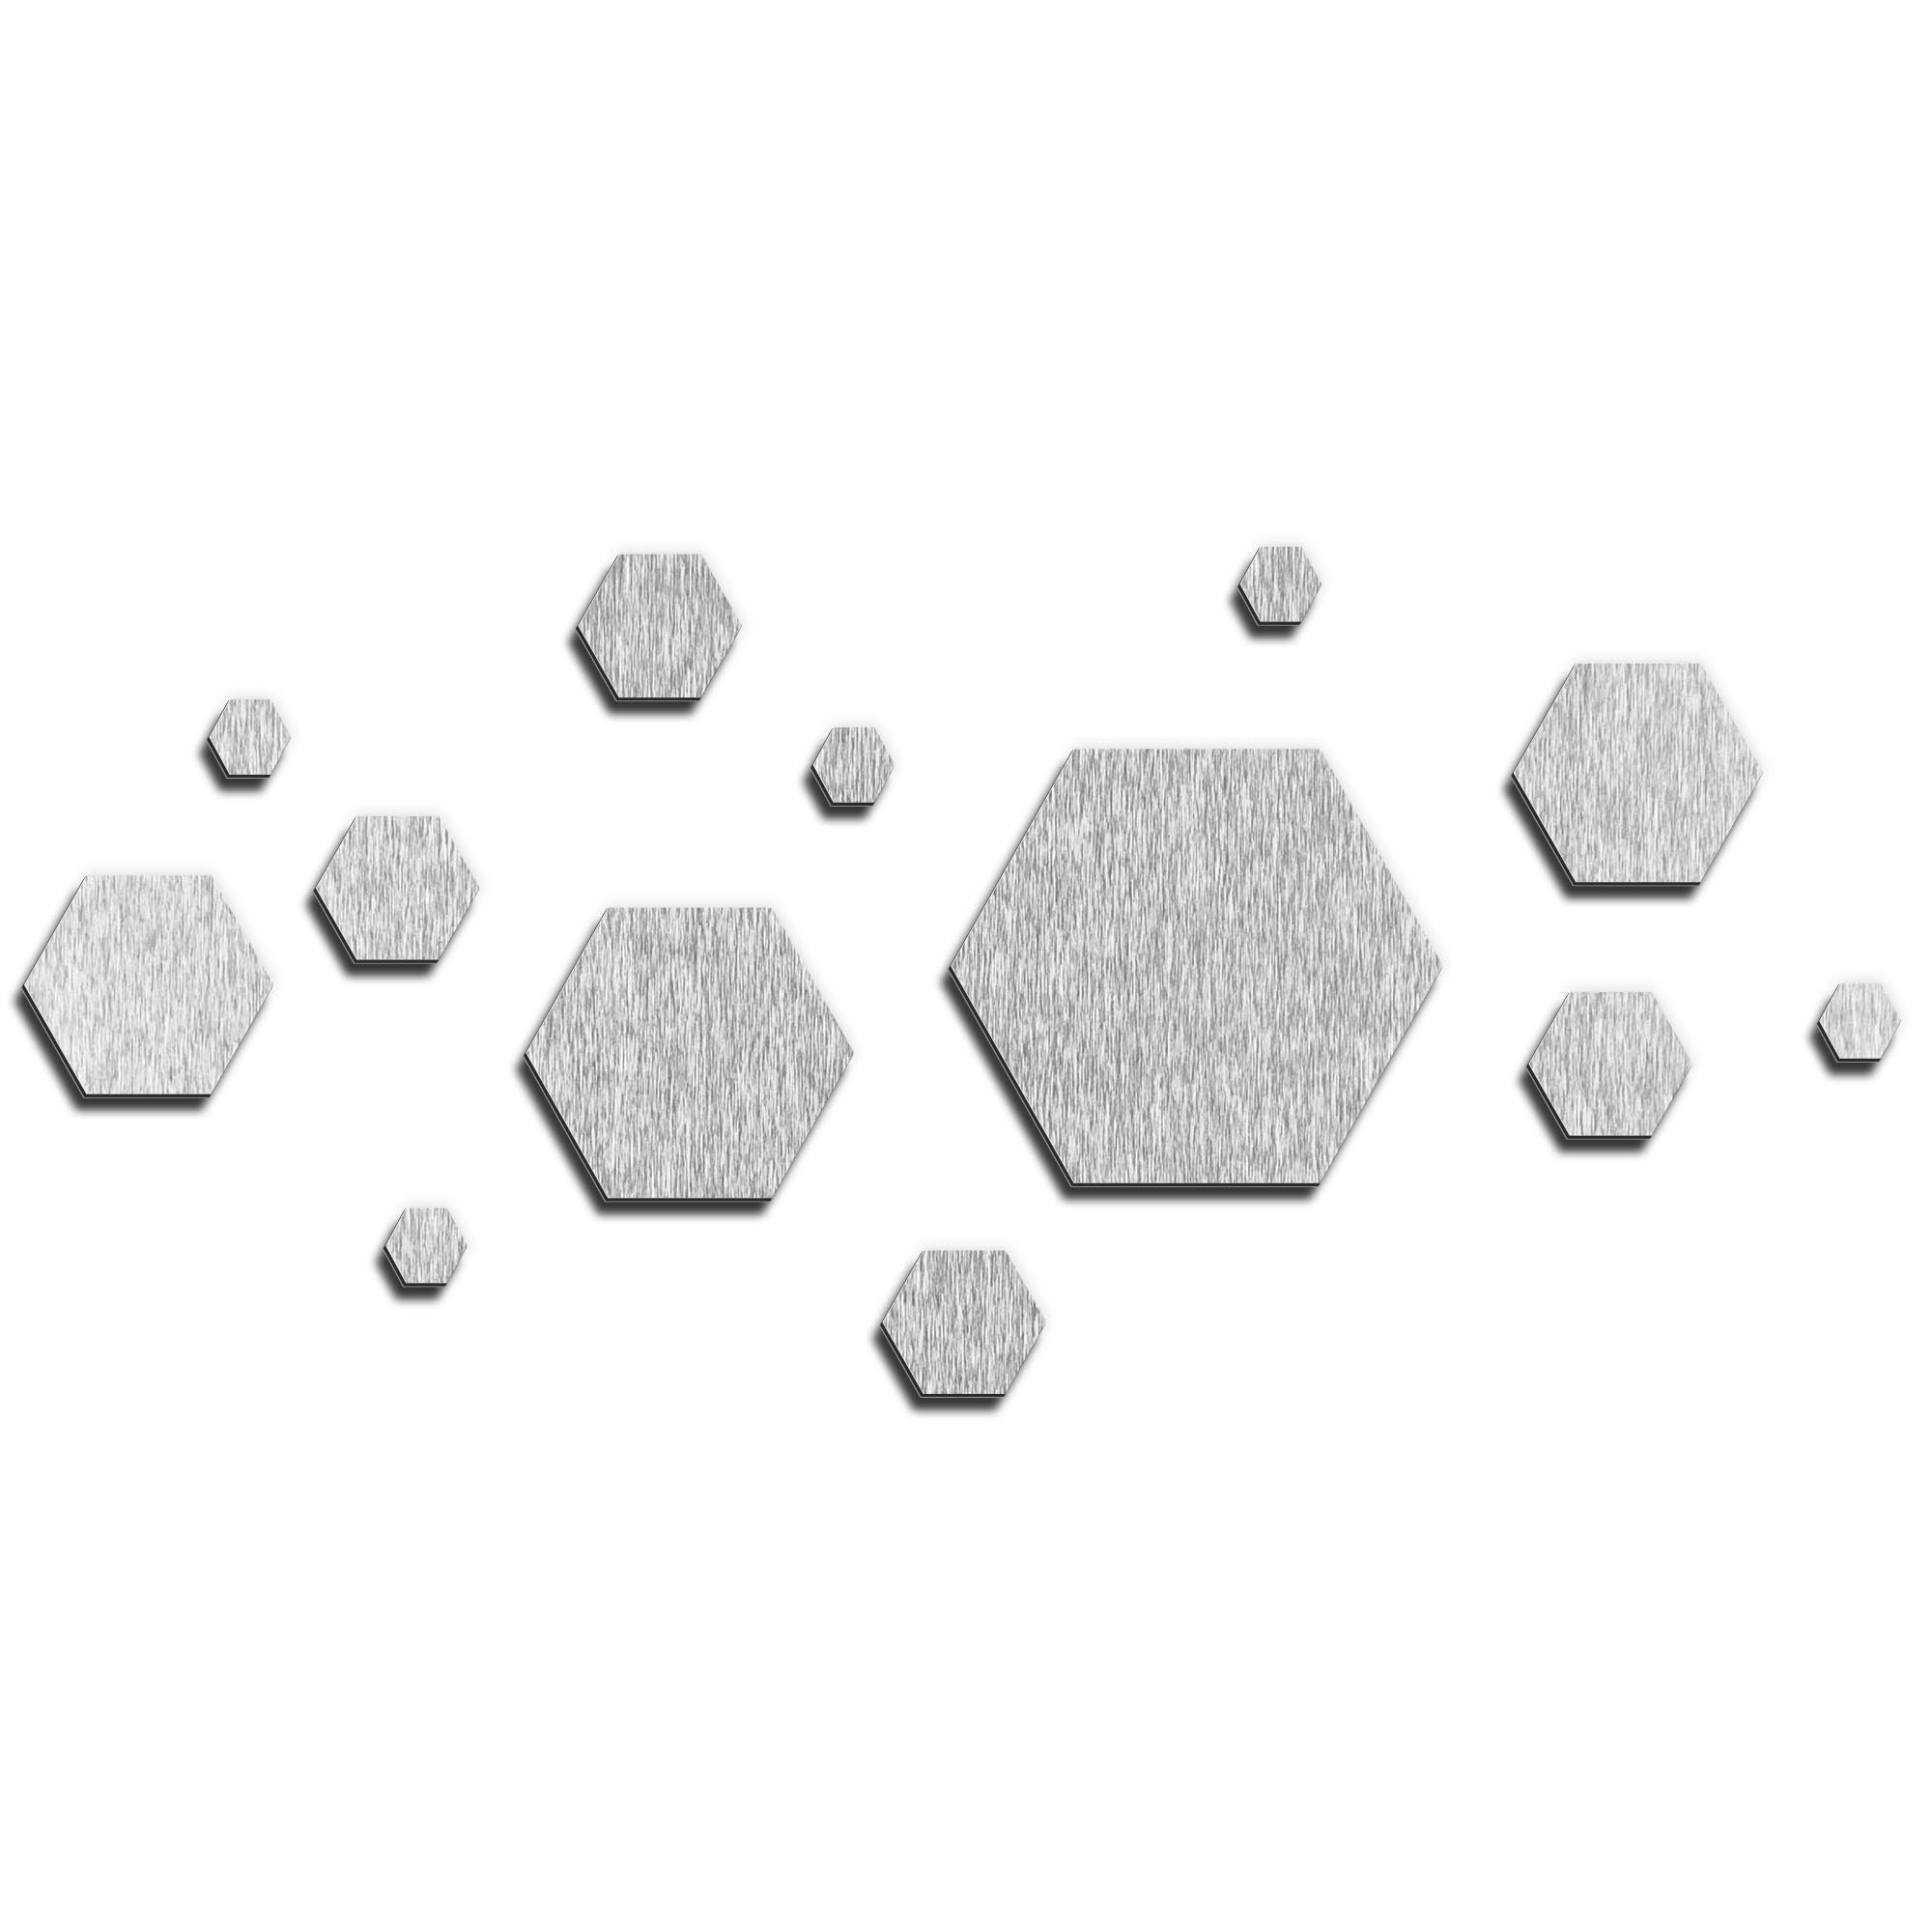 NAY 'Honeycomb Silver' 70in x 32in Hexagons Abstract Art on Aluminum Composite